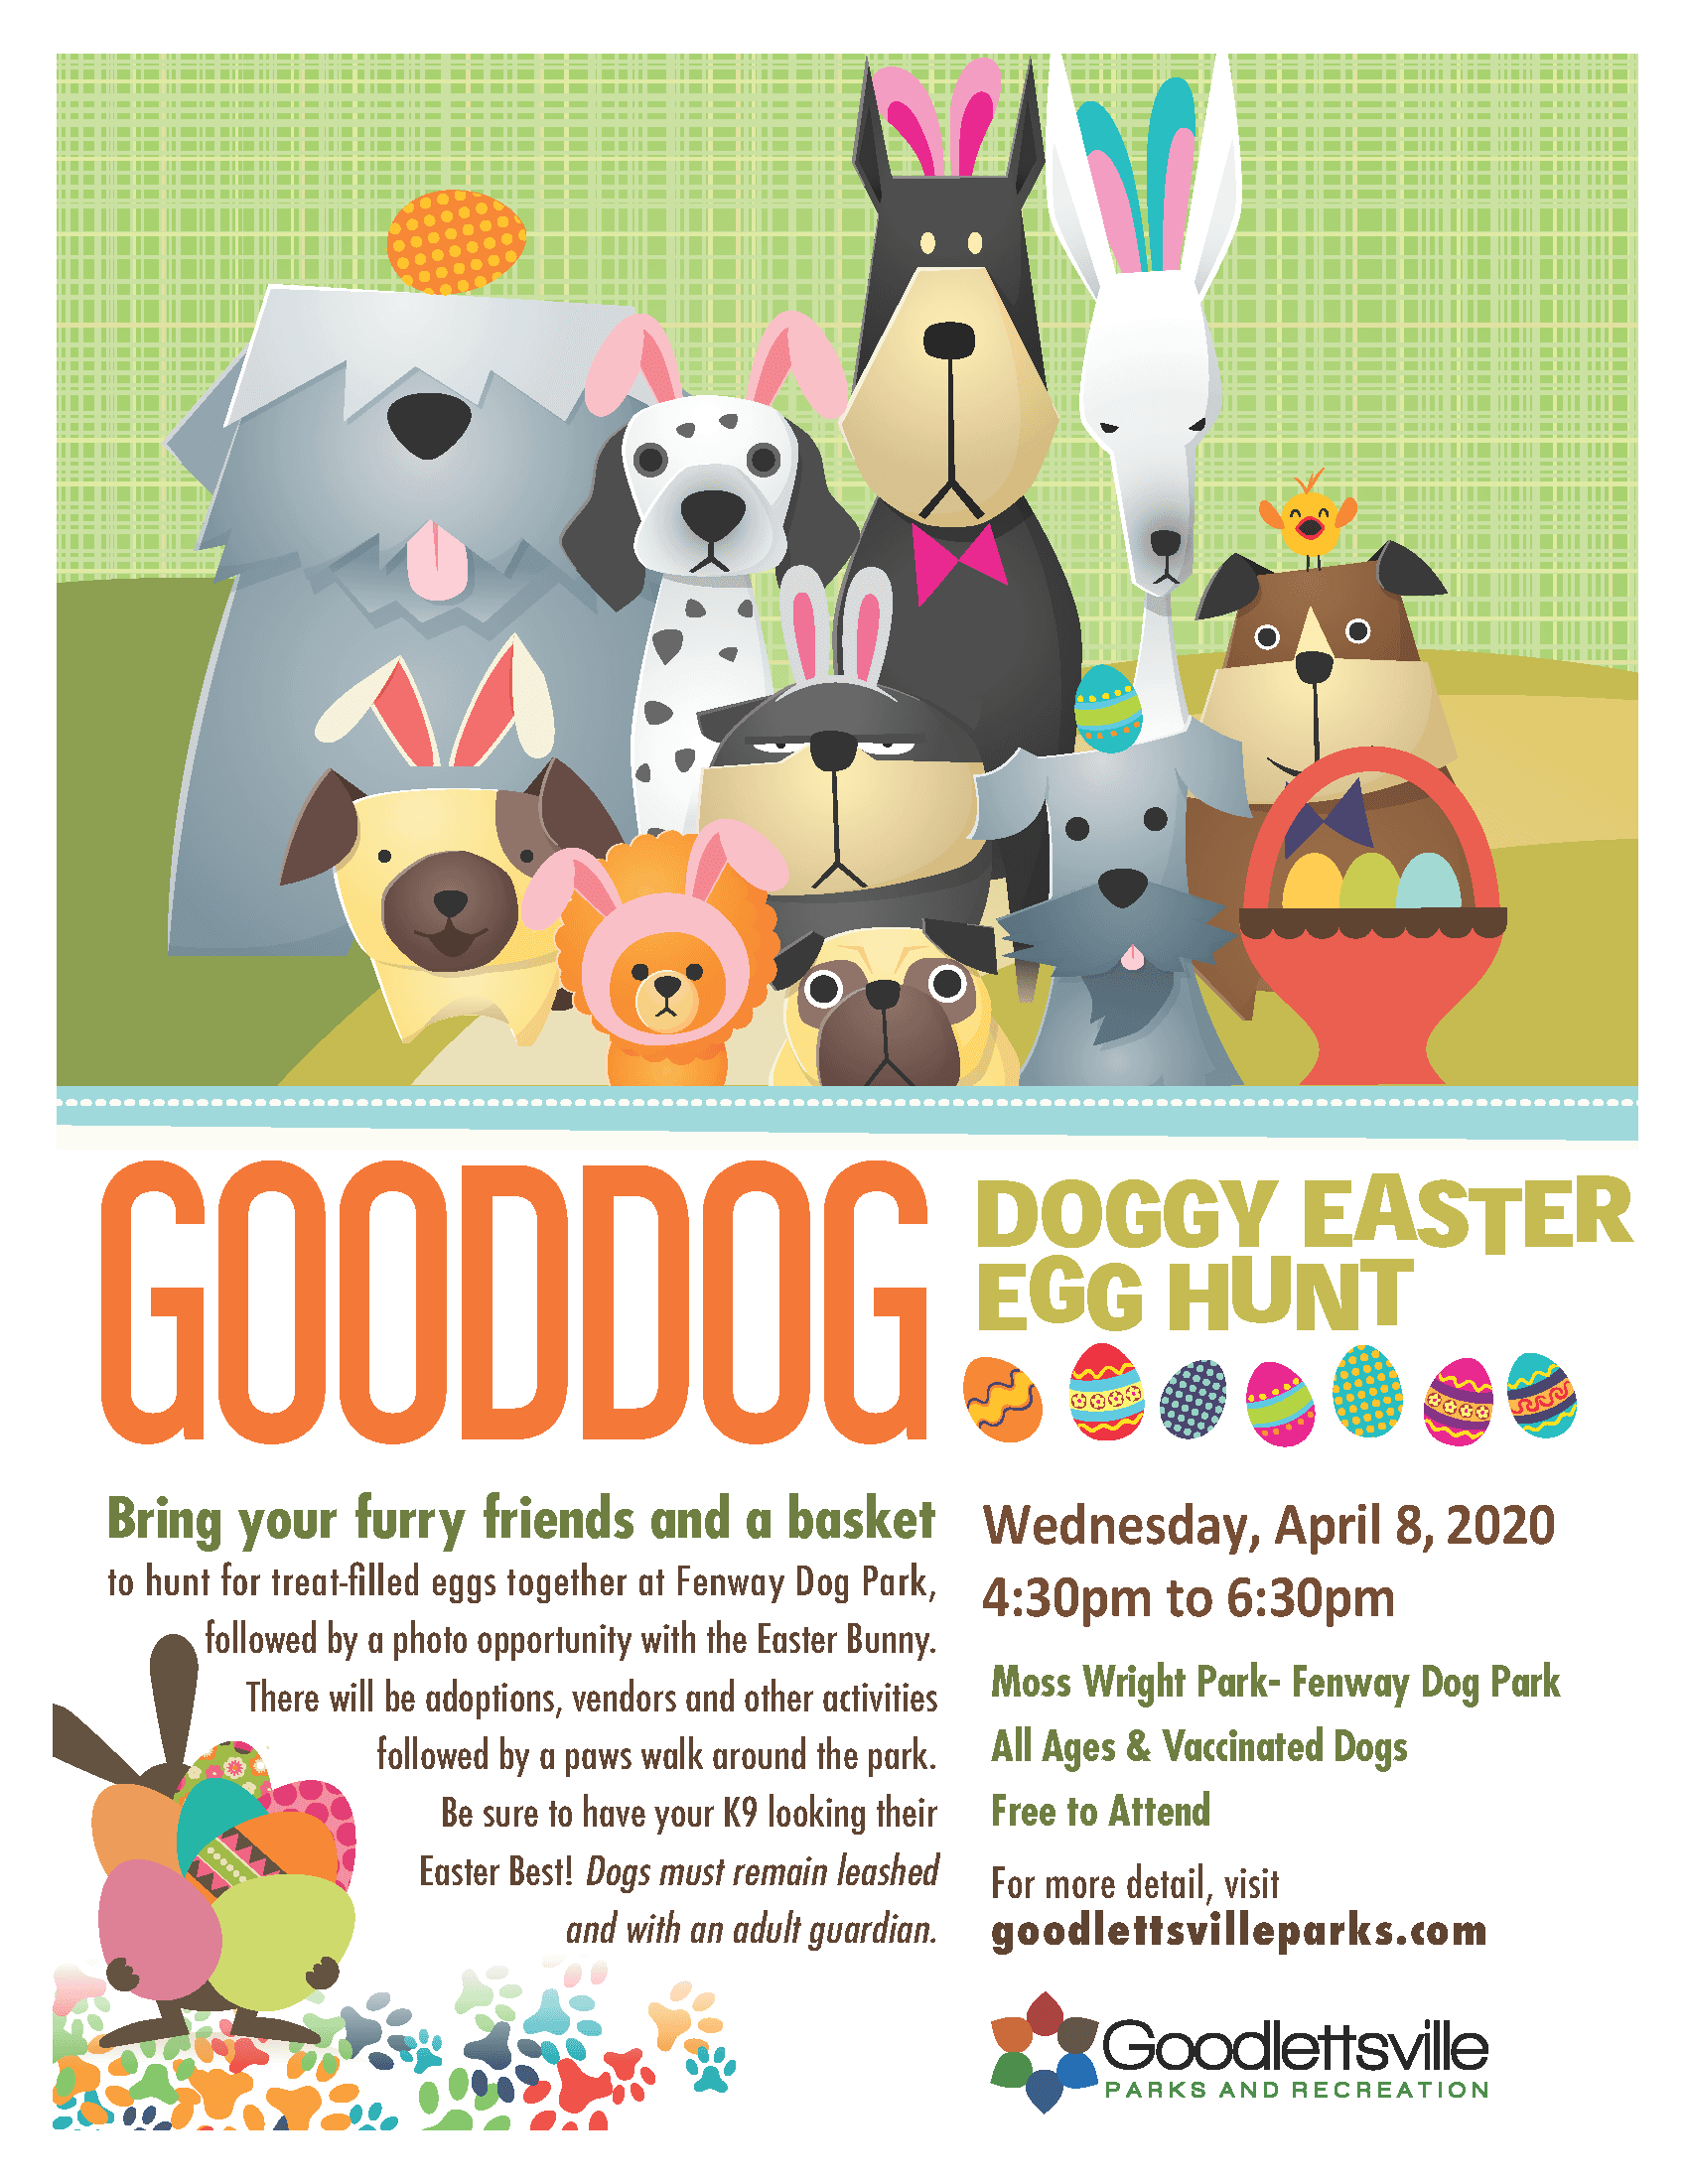 GoodDOG flyer with dogs holding Easter basket